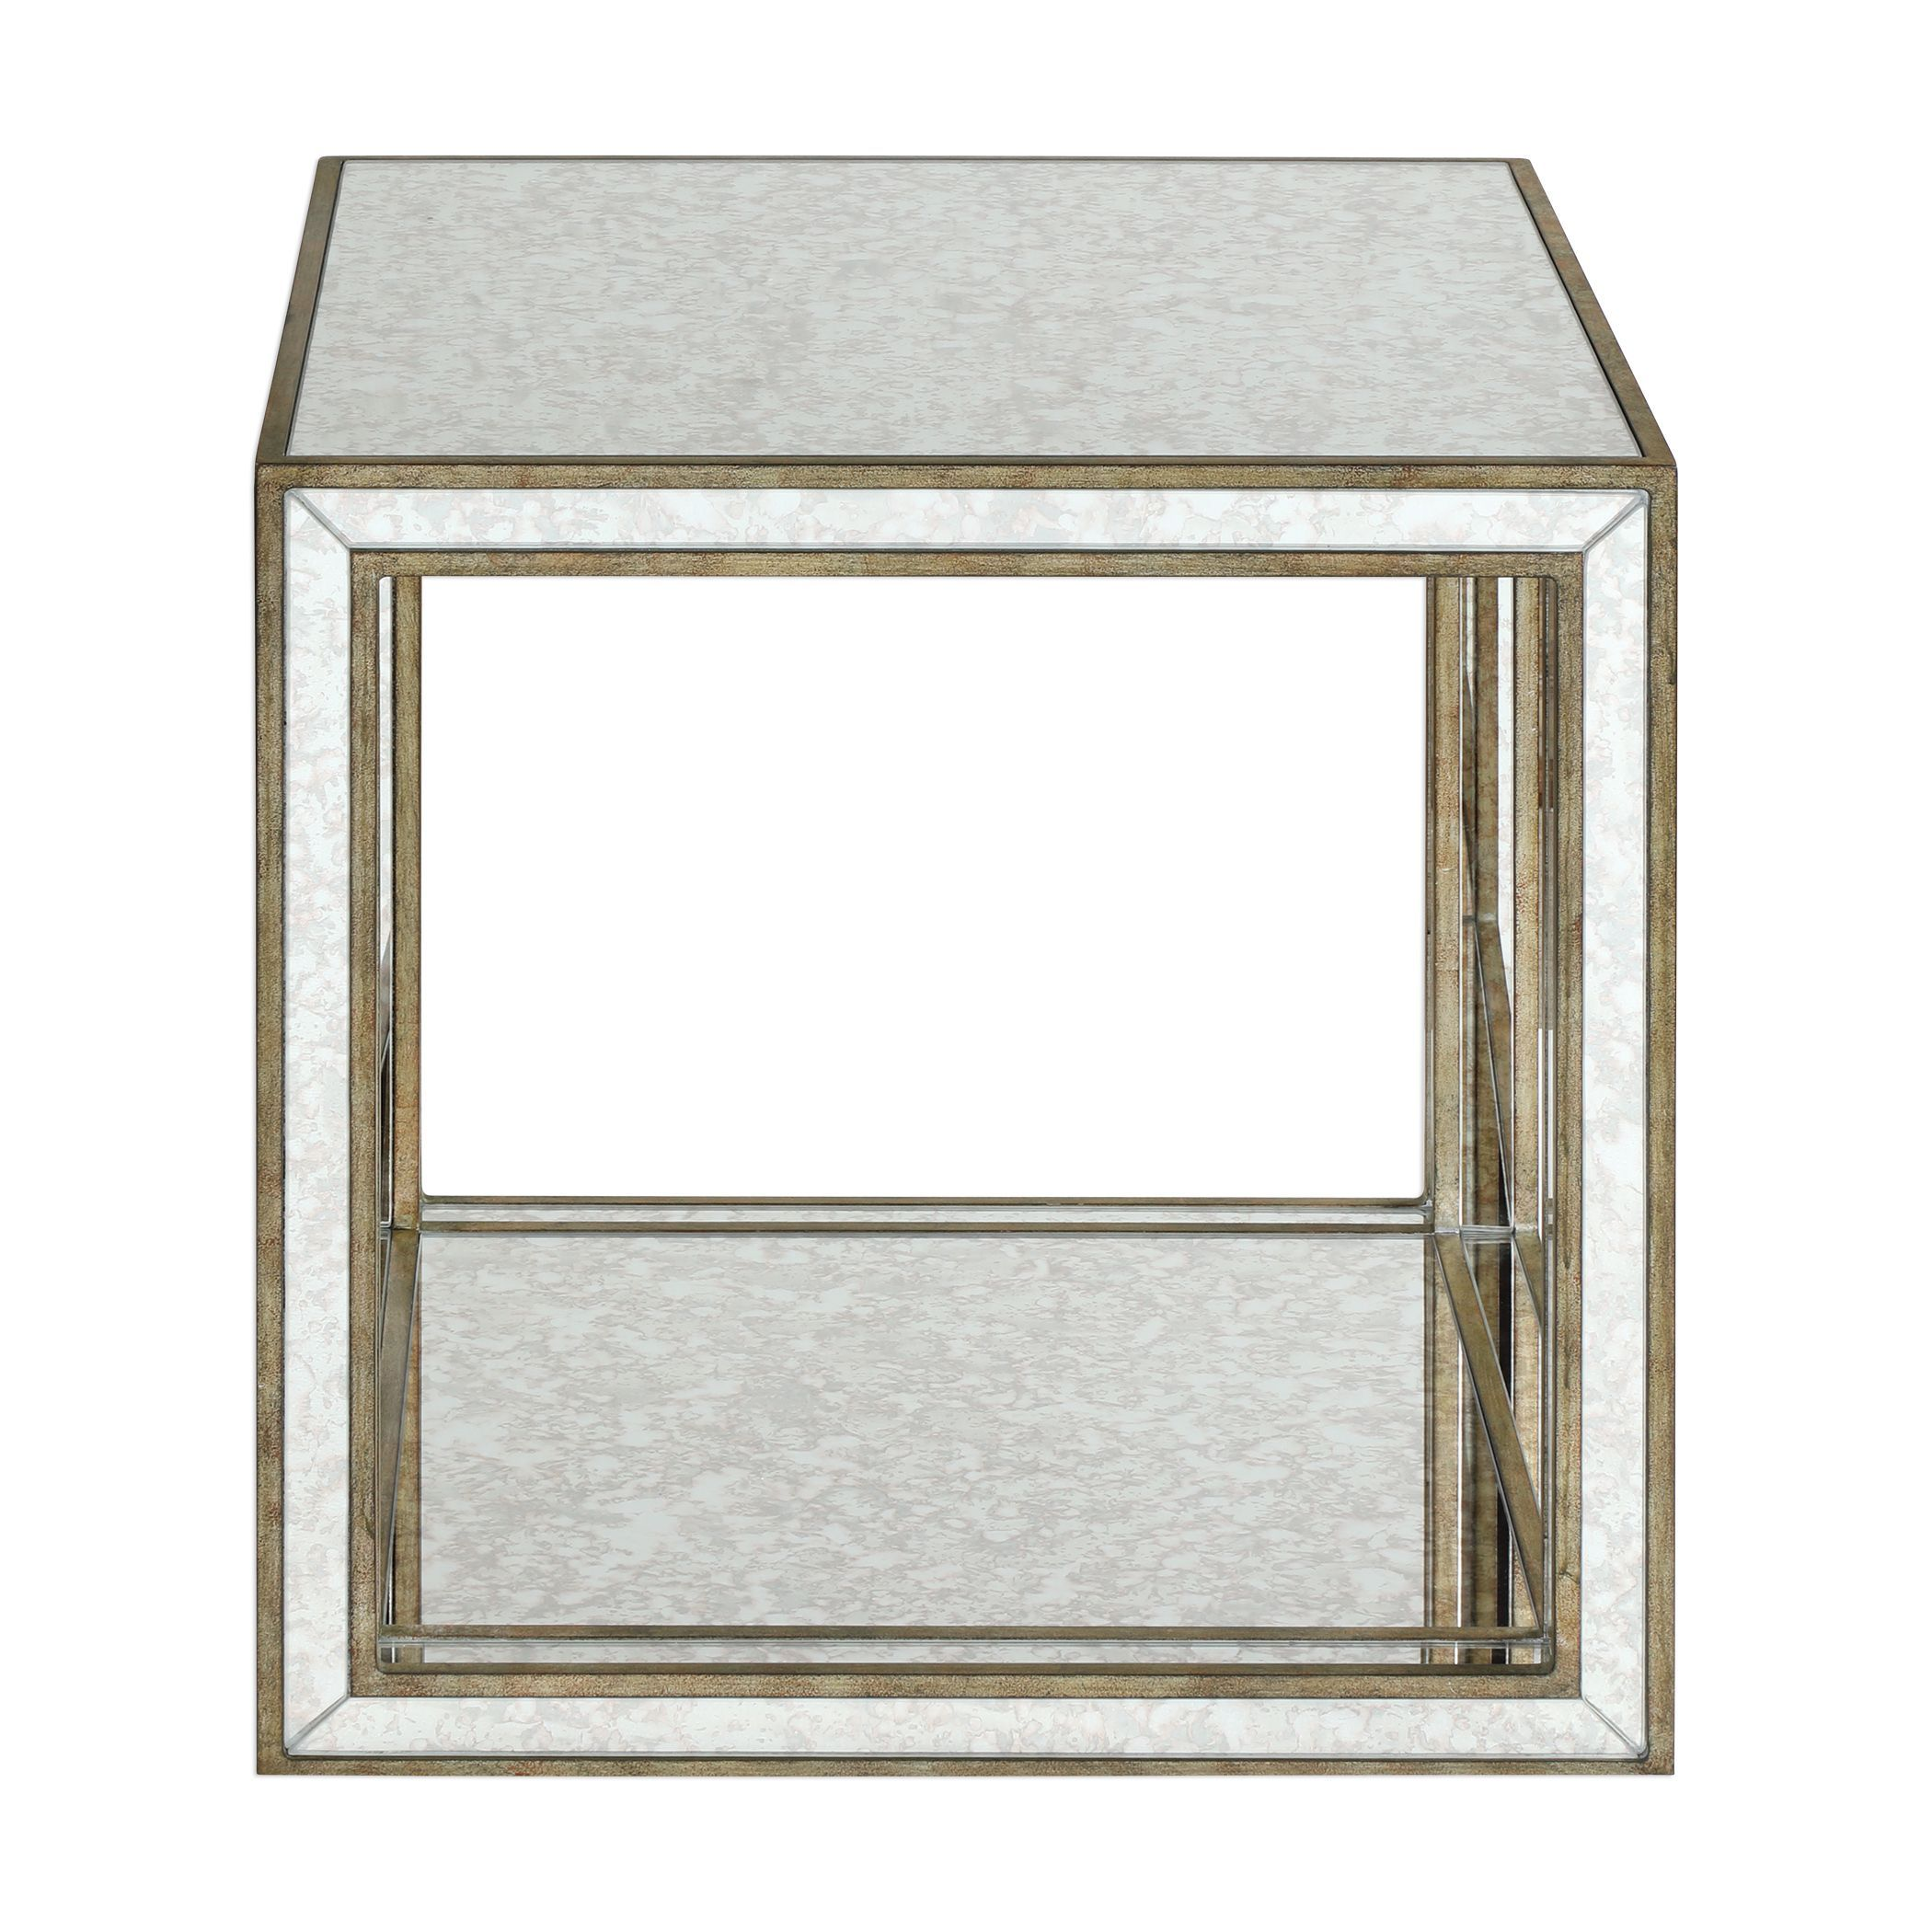 julie contemporary antique mirrored open cube accent table uttermost pub set bbq grill side with drawer white lamps usb and black wicker patio furniture red living room decor